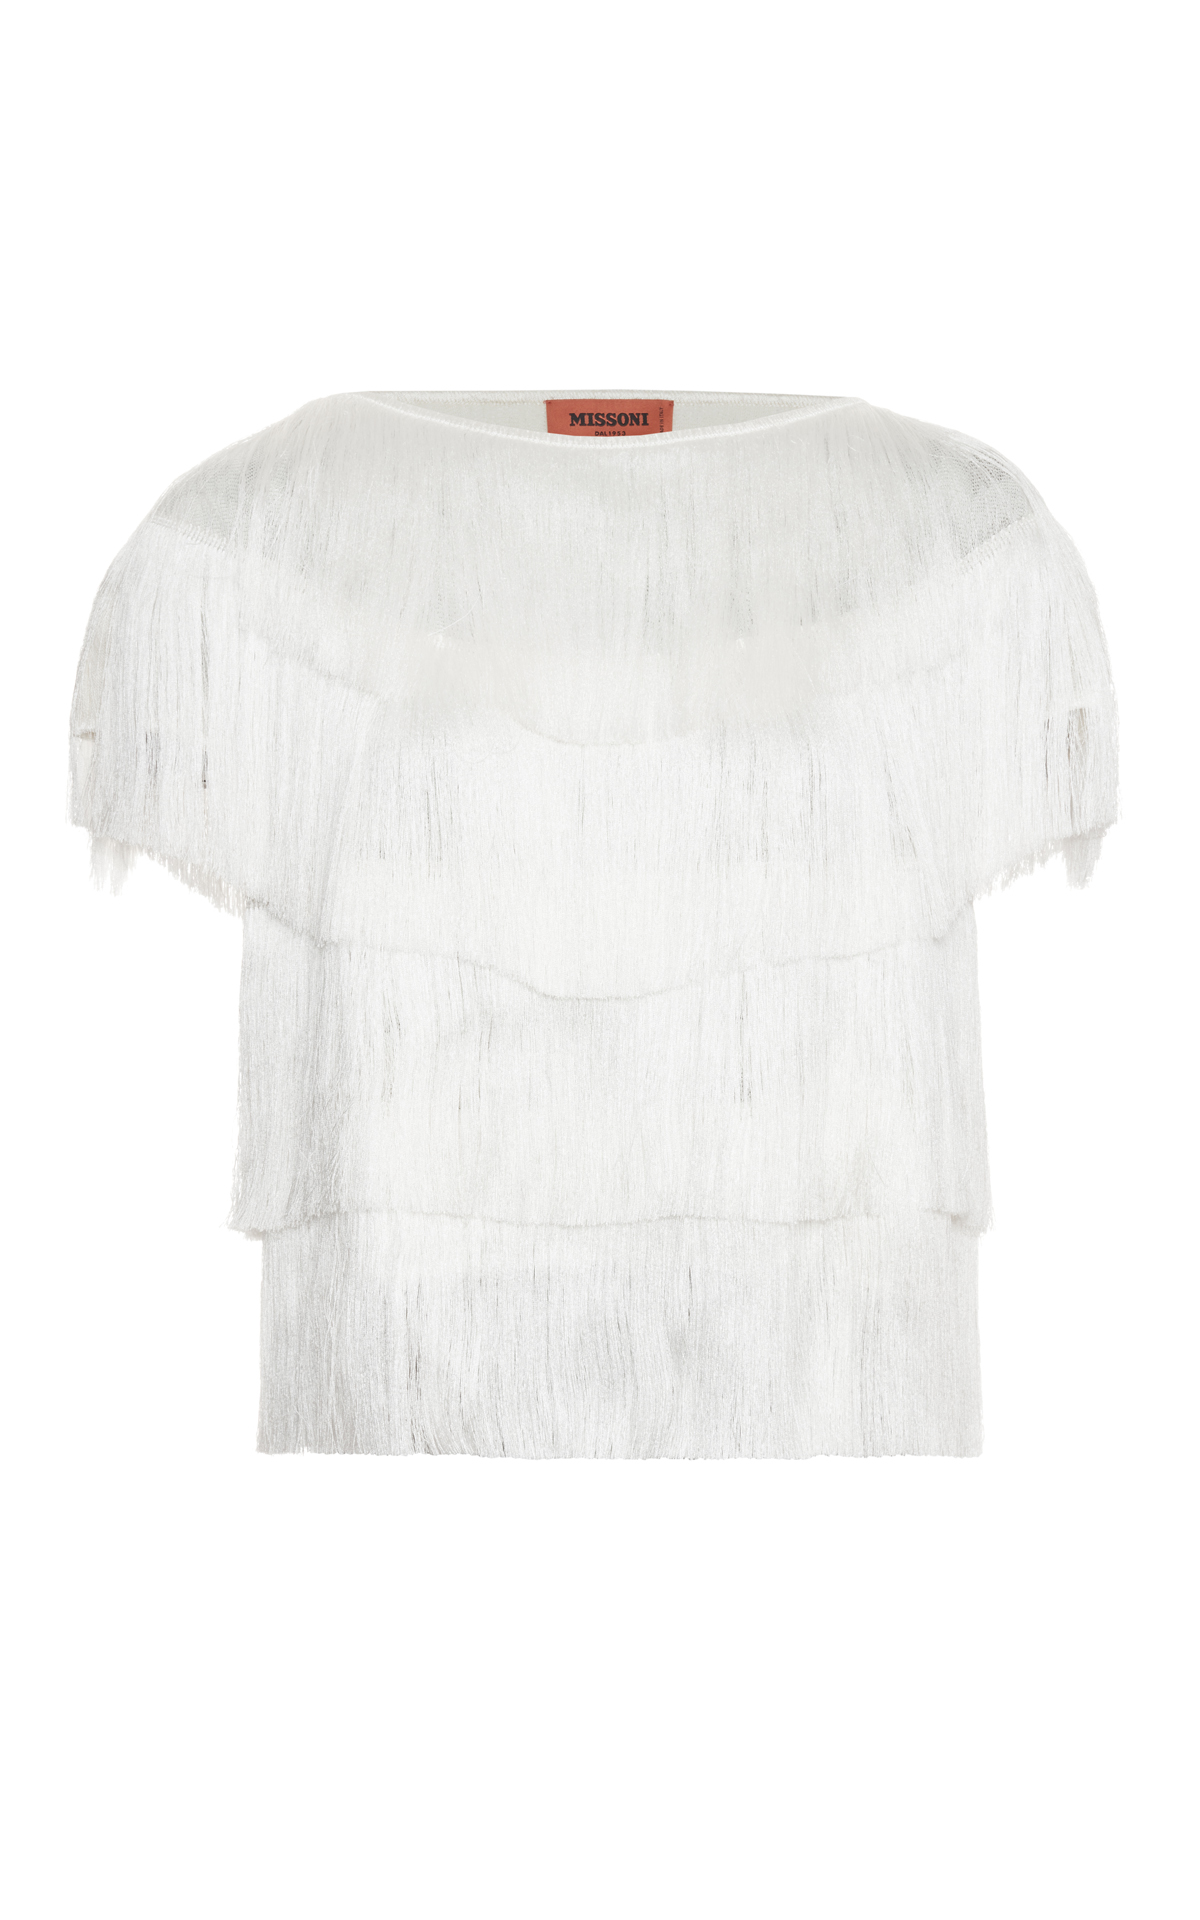 Missoni White fringe top from Bicester Village